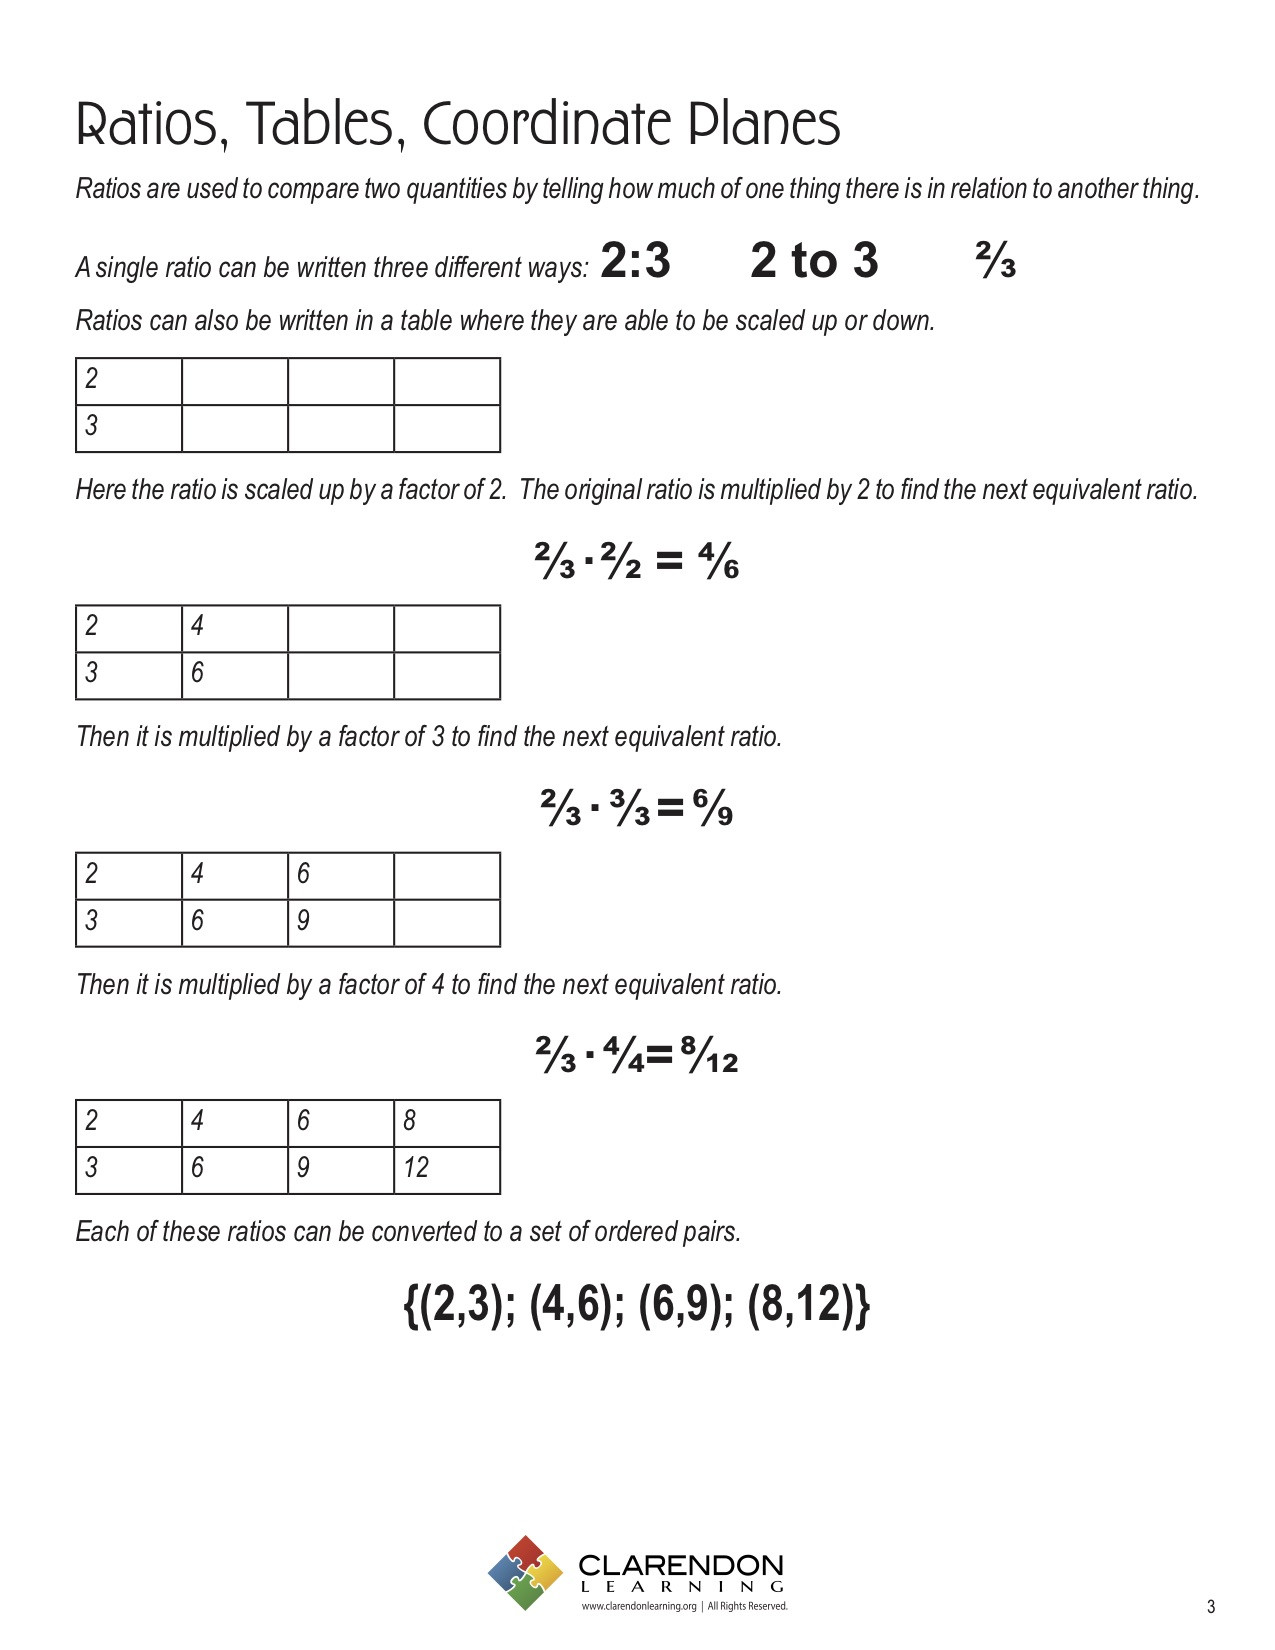 Ratio Tables 6th Grade Worksheets Ratios Tables Coordinate Planes Lesson Plan